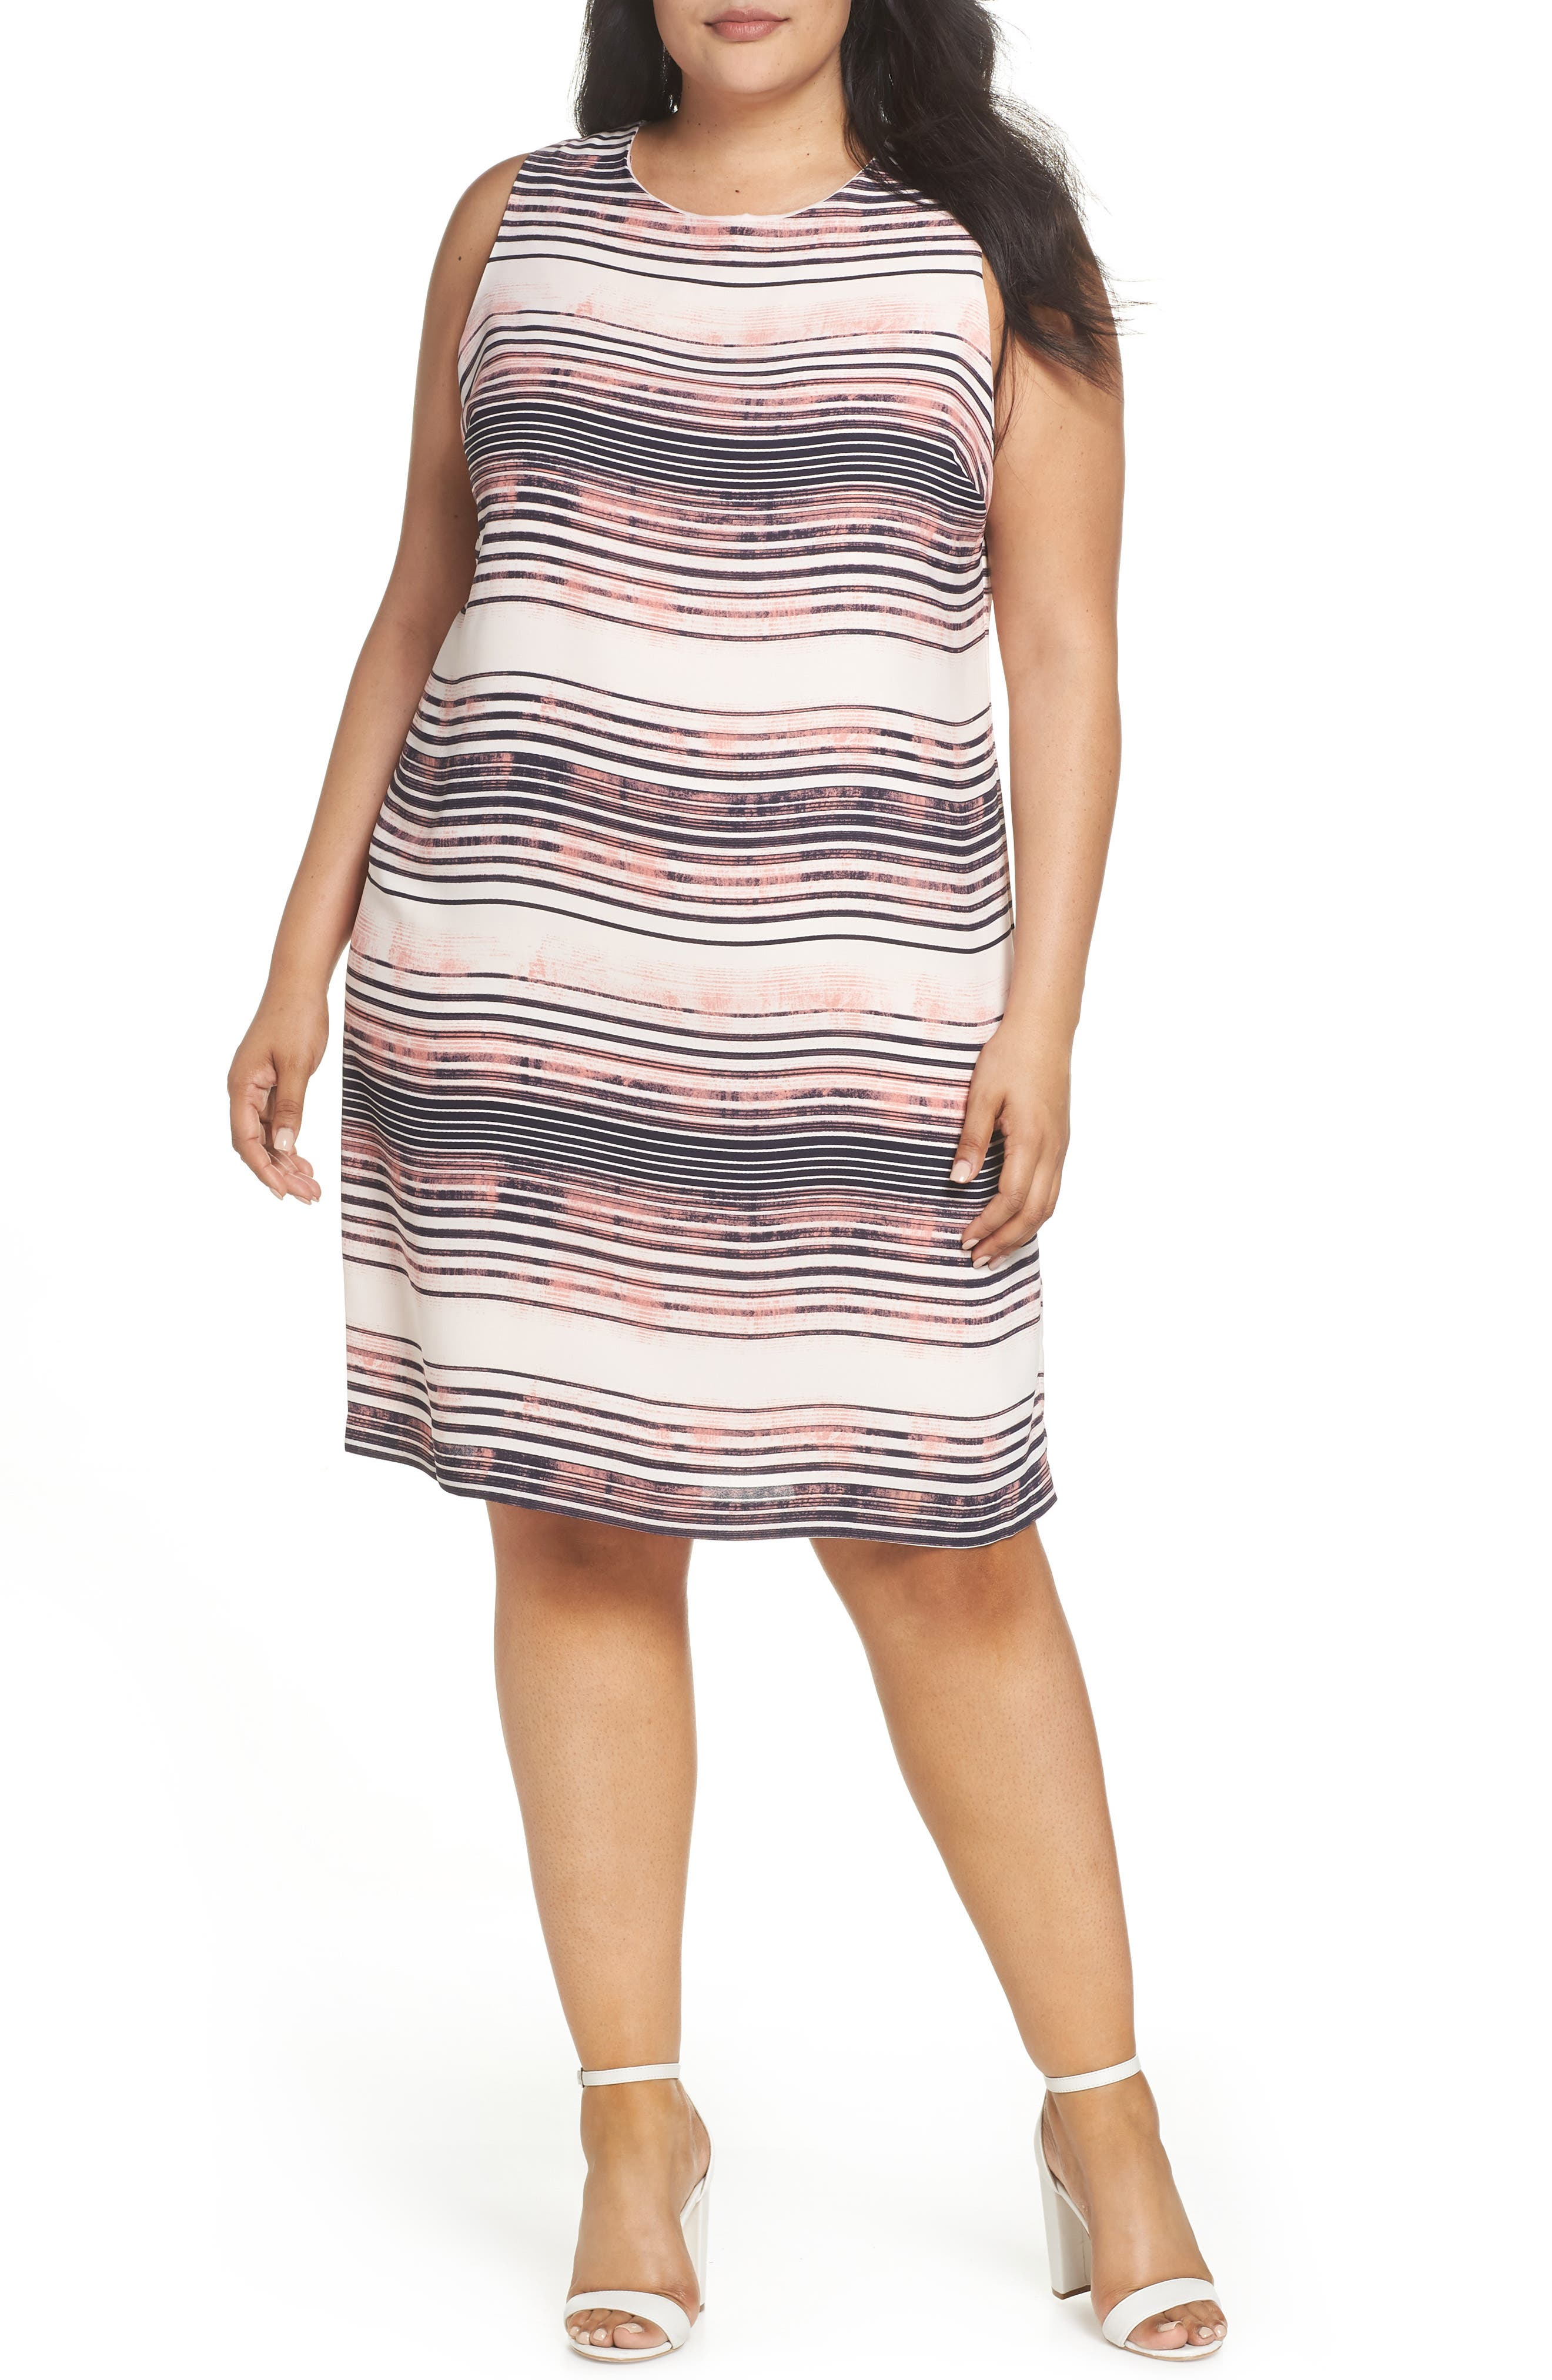 Plus Size Vince Camuto Ancient Muses Shift Dress, Ivory